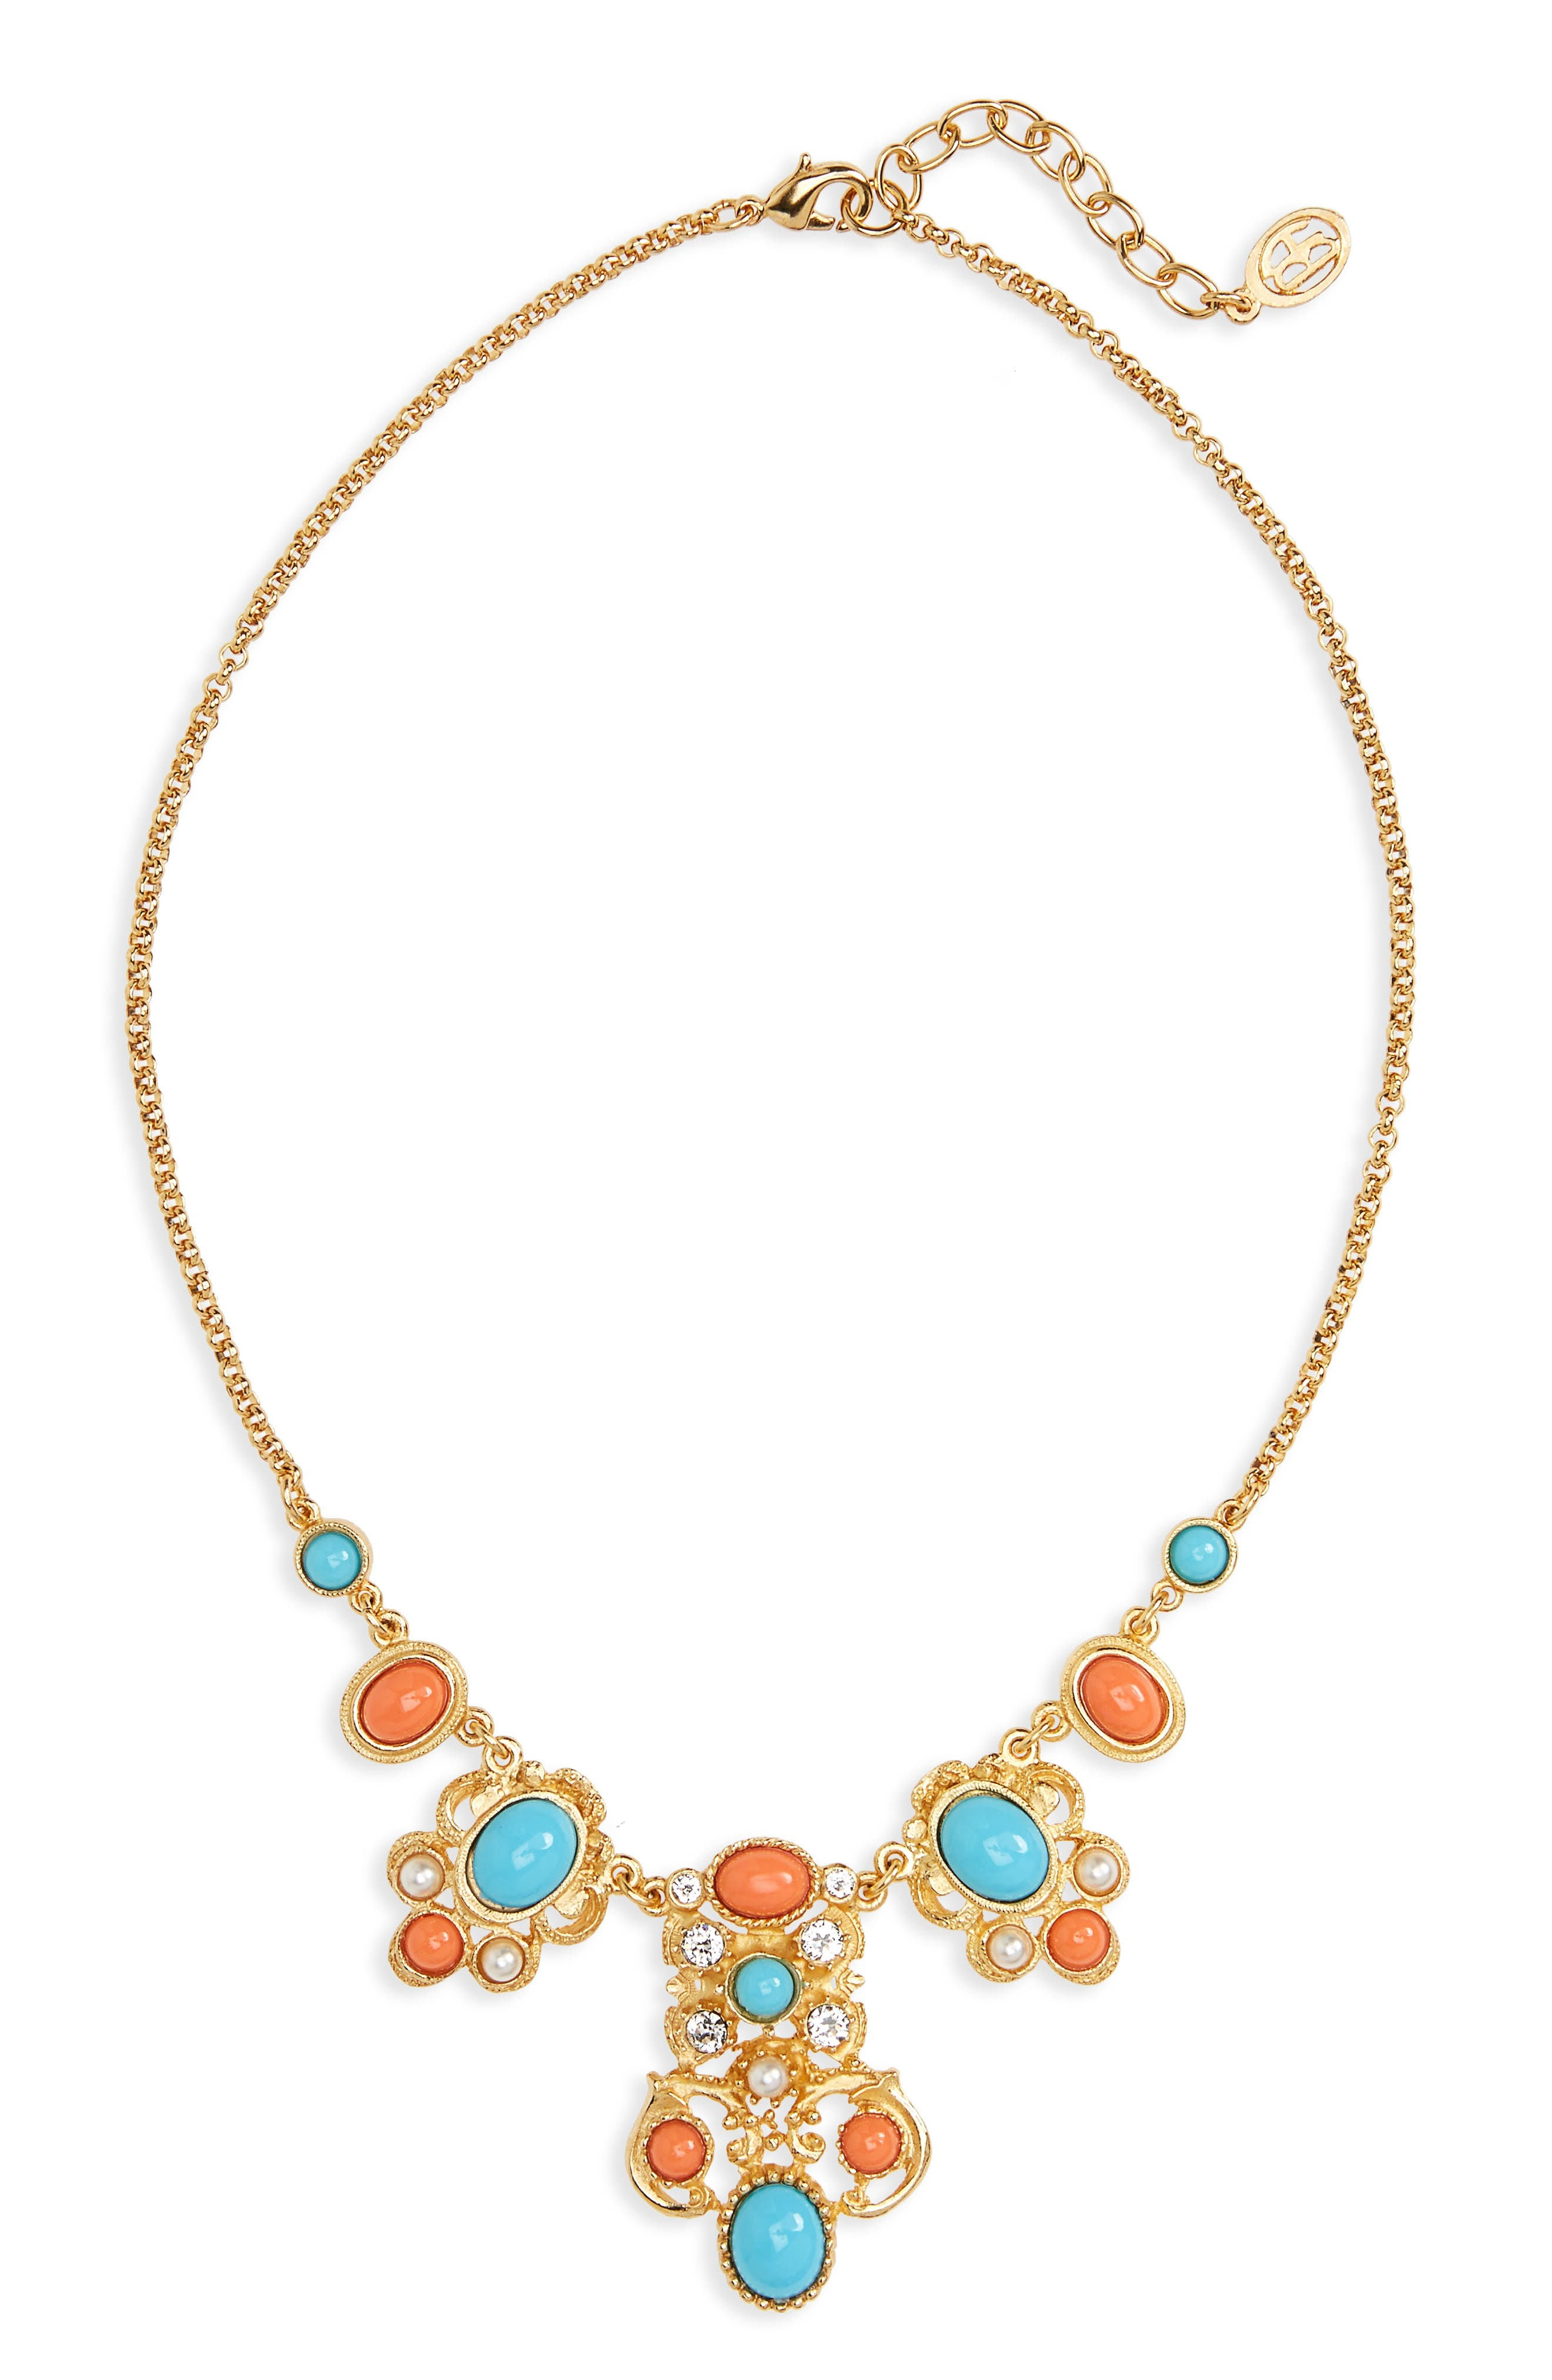 Adriatic Sea Jewel Collar Necklace,                         Main,                         color, Turquoise / Coral / Pearl